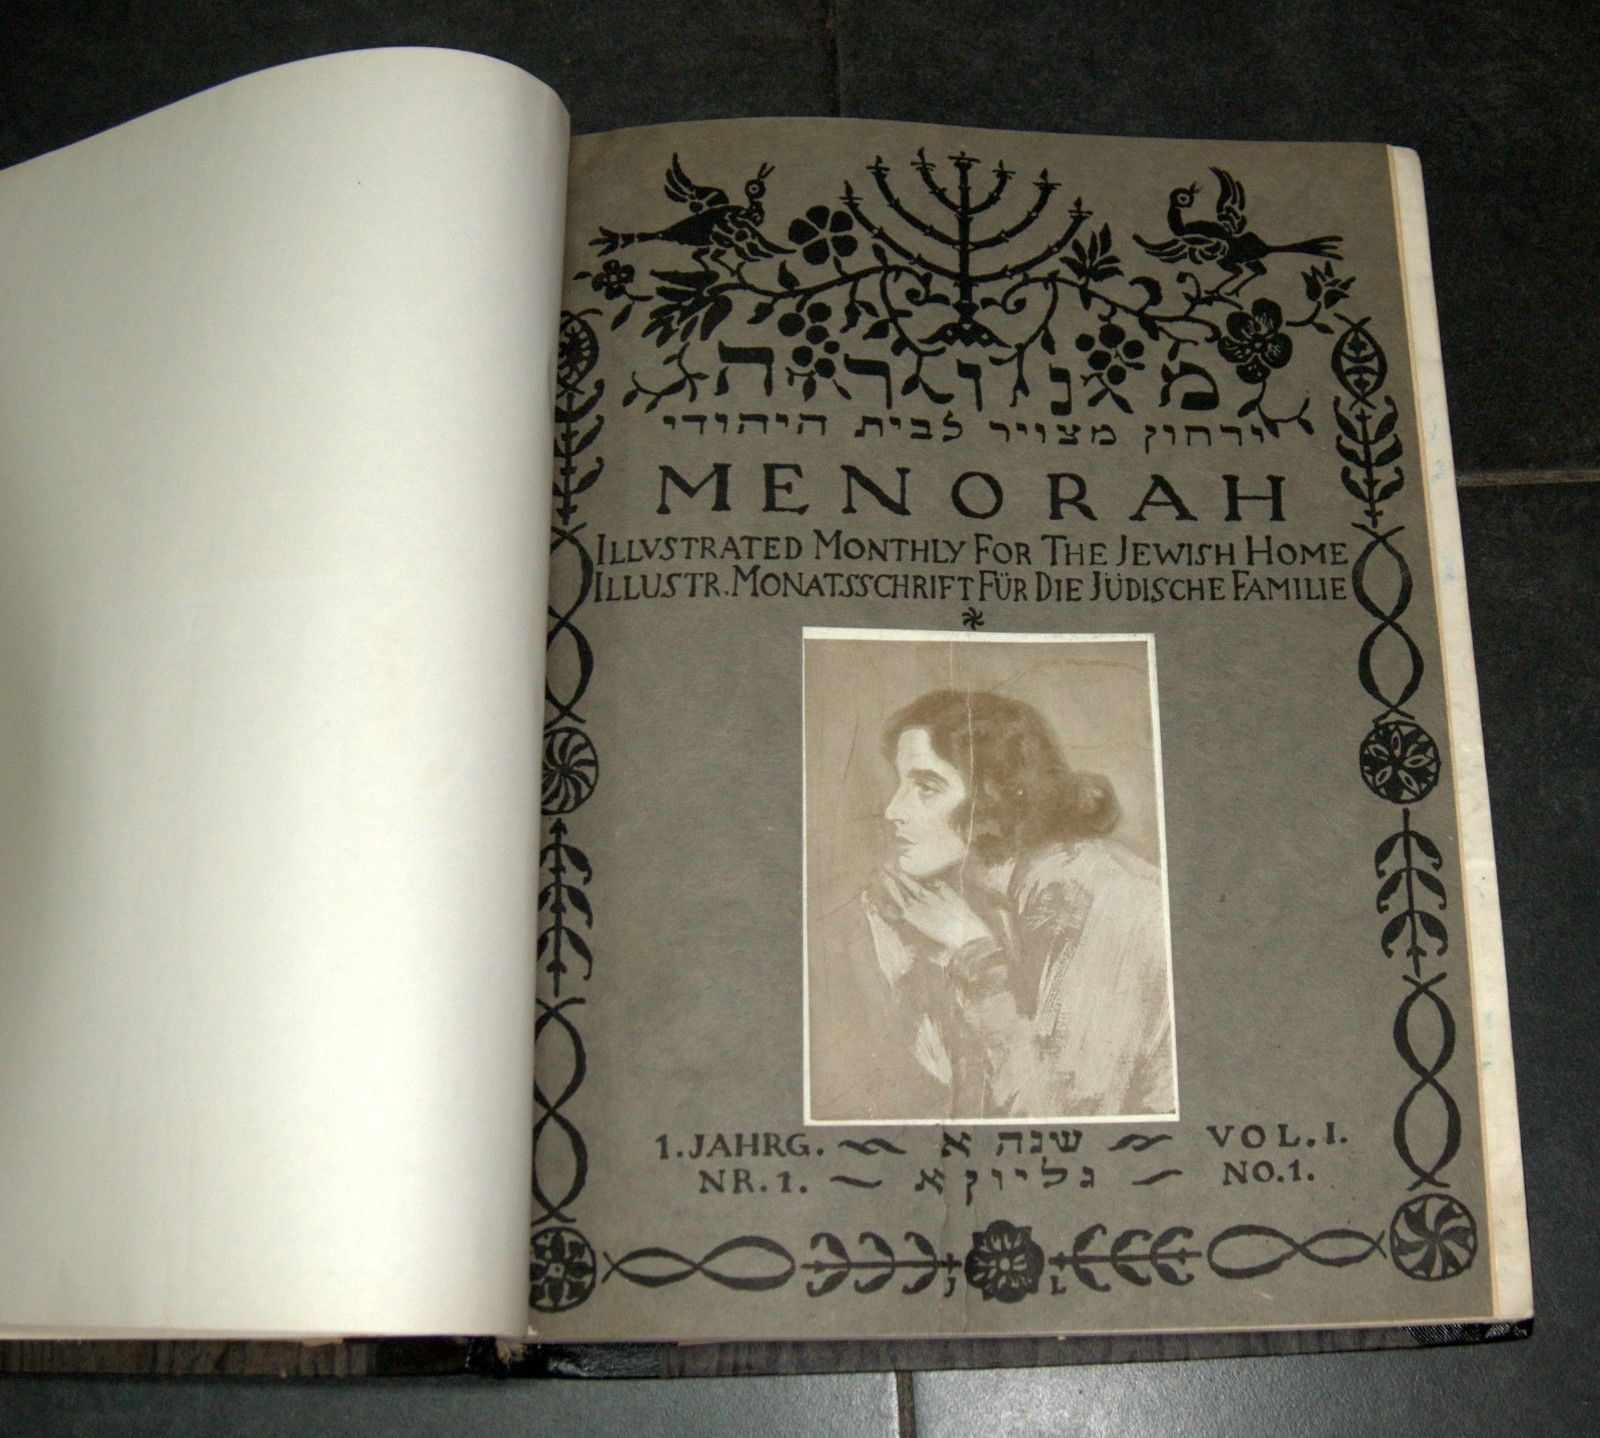 Illustrated Monthly for the Jewish Home MENORAH 1923-1924 18 Issue Hard Binding